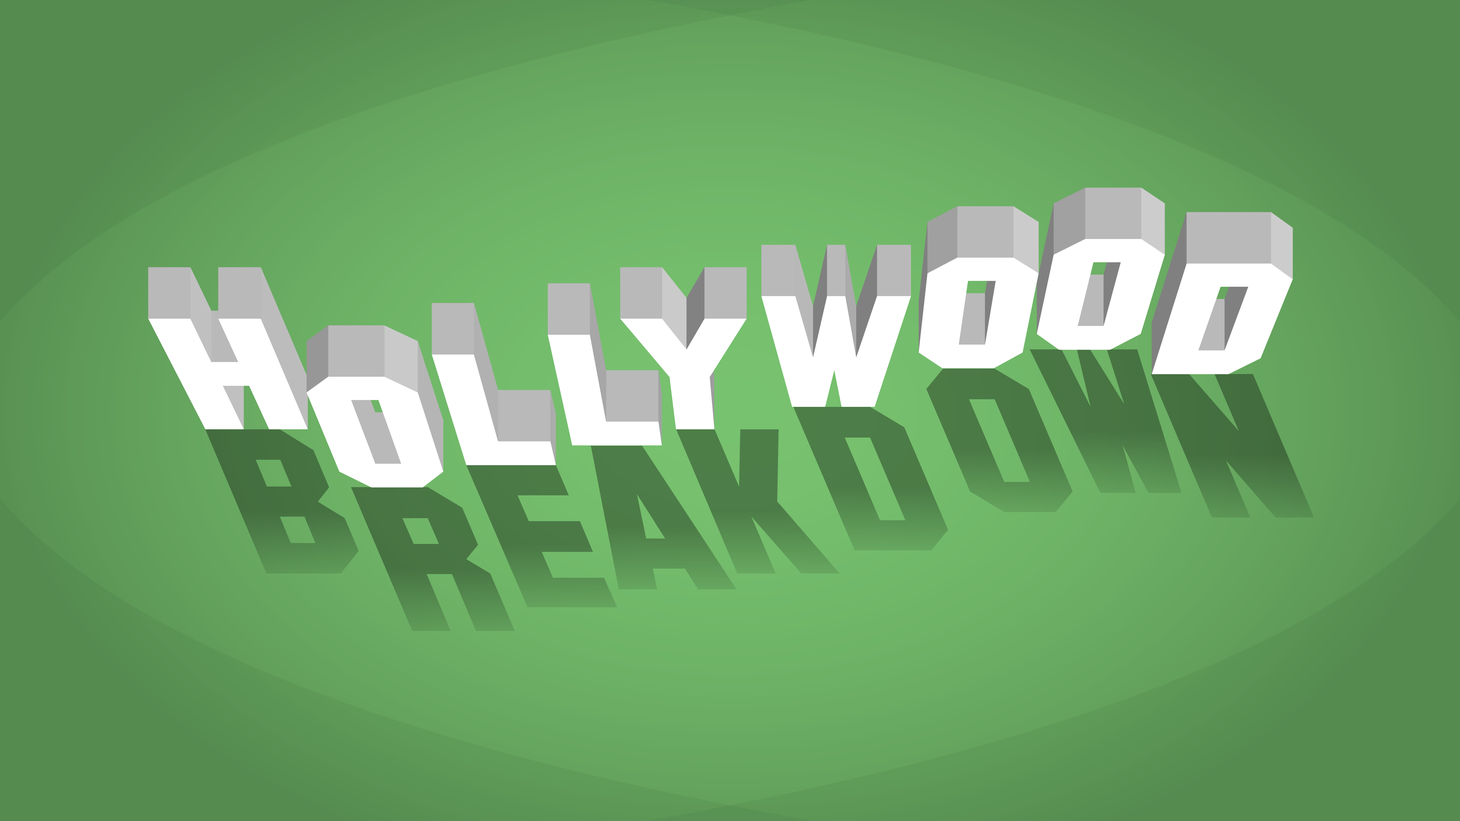 This week on the Hollywood Breakdown, we talk about an actual Hollywood breakdown. Two of the major film studios are leaderless at the moment, and the list of people who could possibly step up is a very short one.